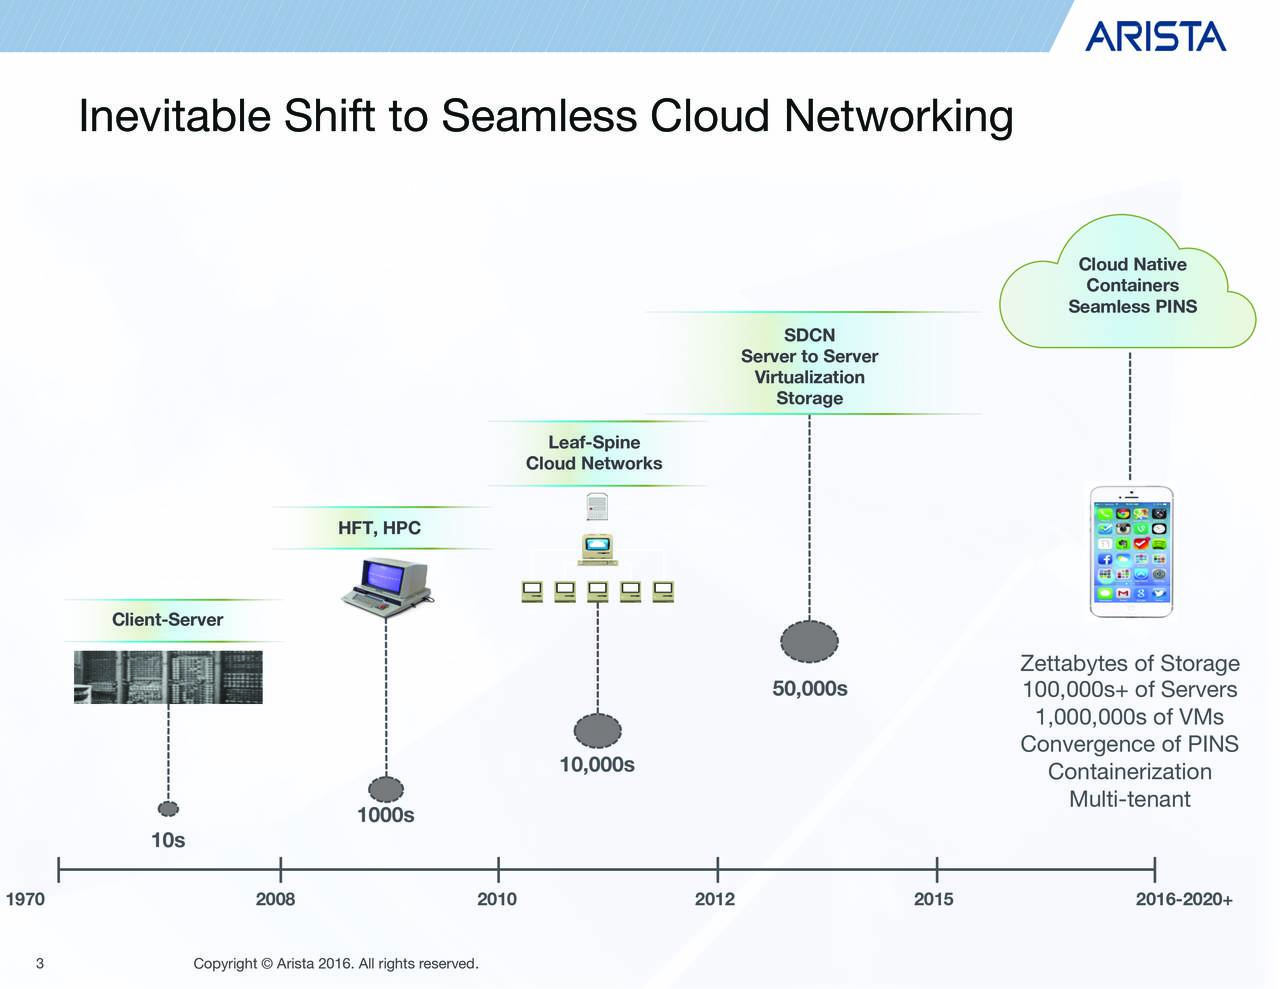 Inevitable Shift to Seamless Cloud Networking SDCN Server to Server Virtualization Storage Leaf-Spine Cloud Networks Database Server HFT, HPC Server ClieClieClieClieClient Client-Server Alternate text color: Hex color# 112346 50,000s 10,000s 1000s 10s 1970 2008 2010 2012 2015 3 Copyright  Arista 2016. All rights reserved.